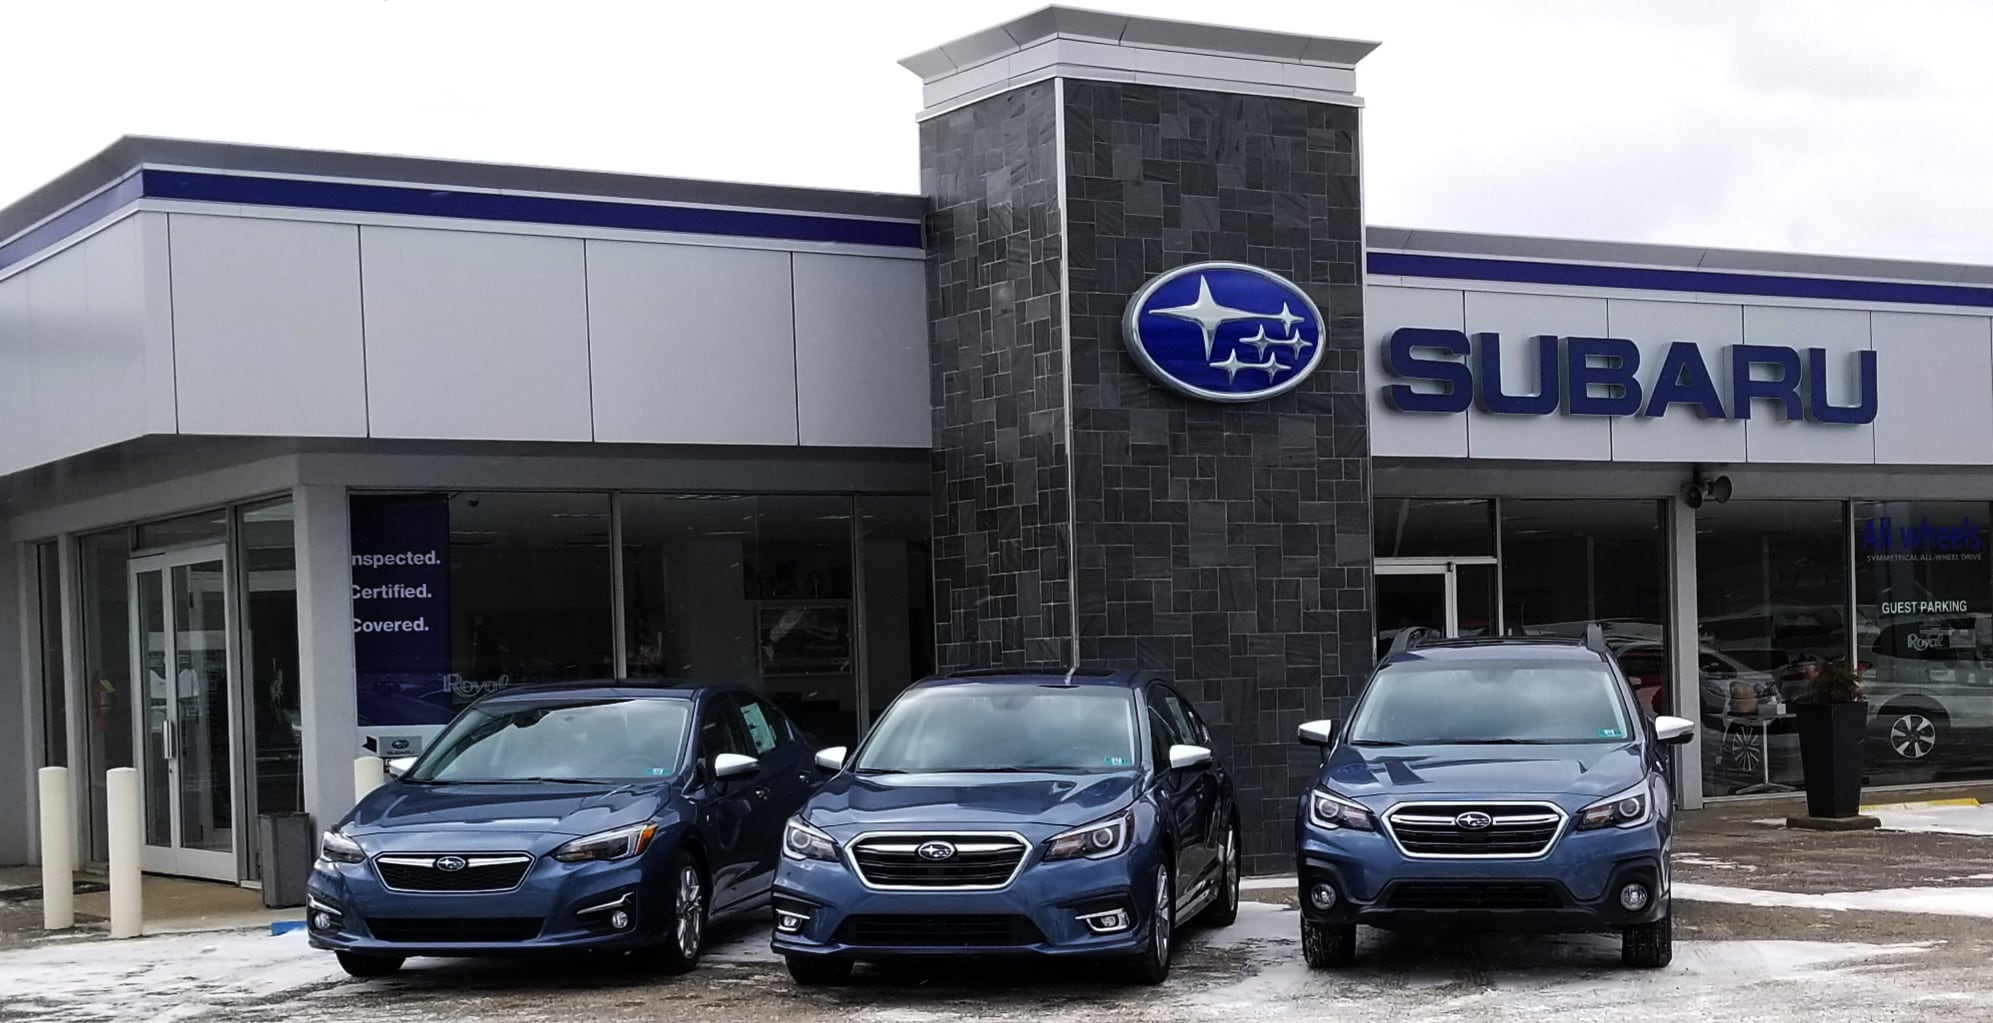 royal subaru 2.jpg